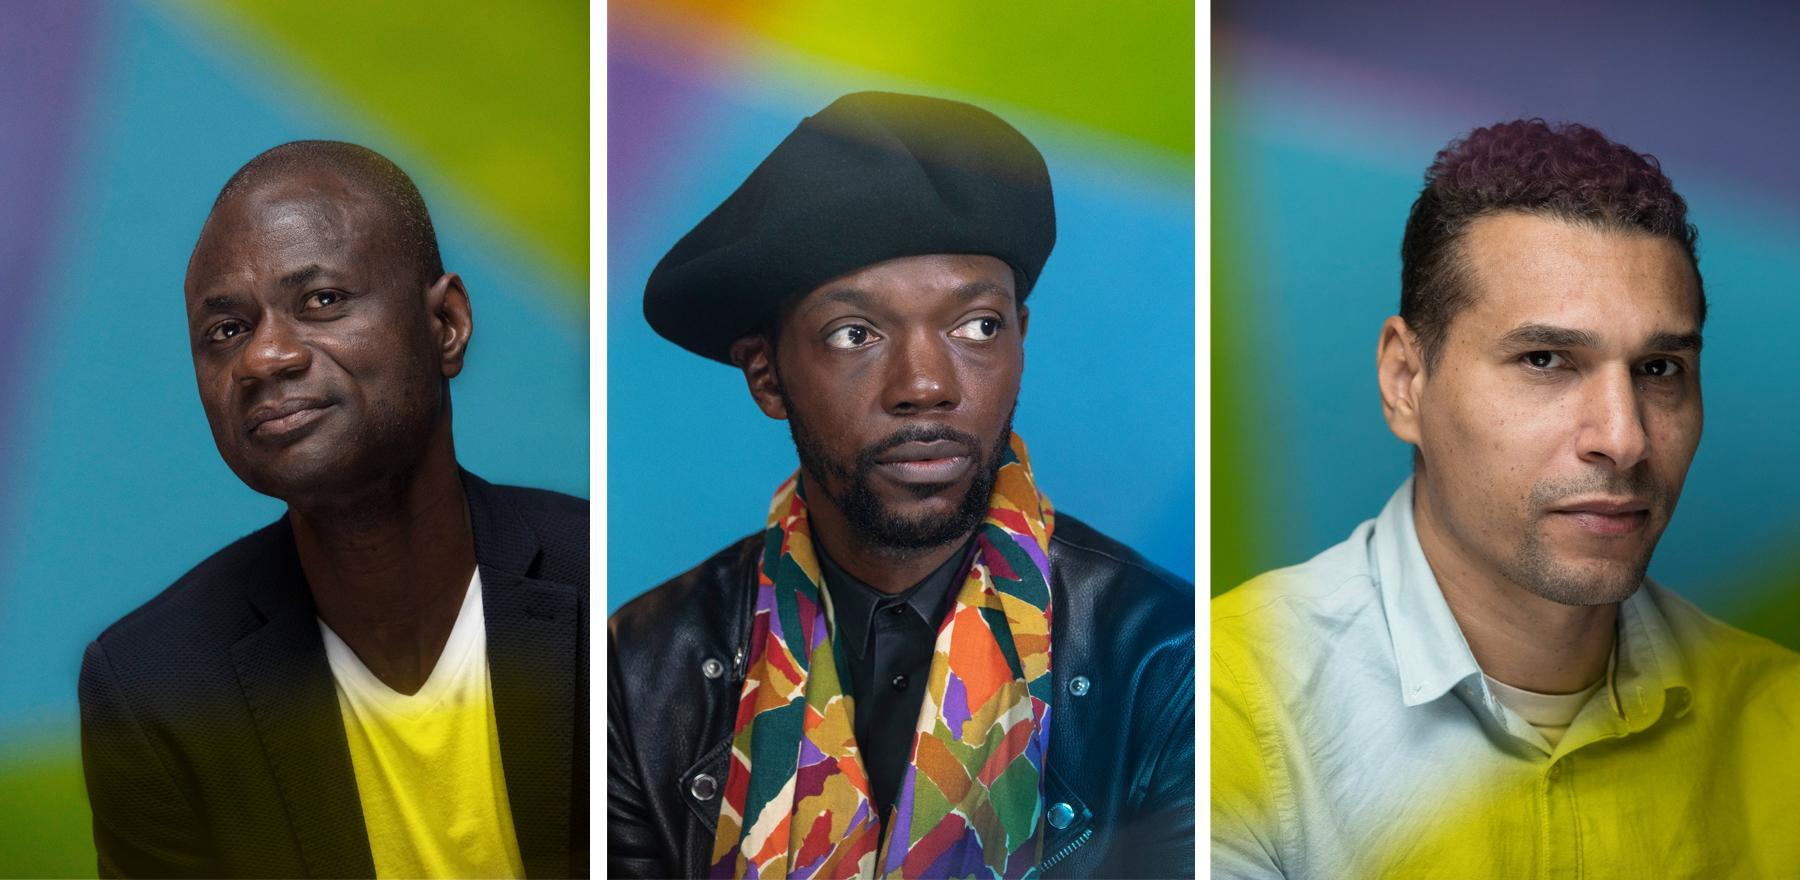 Portraits (left to right) Festival director Alex Moussa Sawadogo, rapper & filmmaker Baloji and film director Yuri Ceuninck.